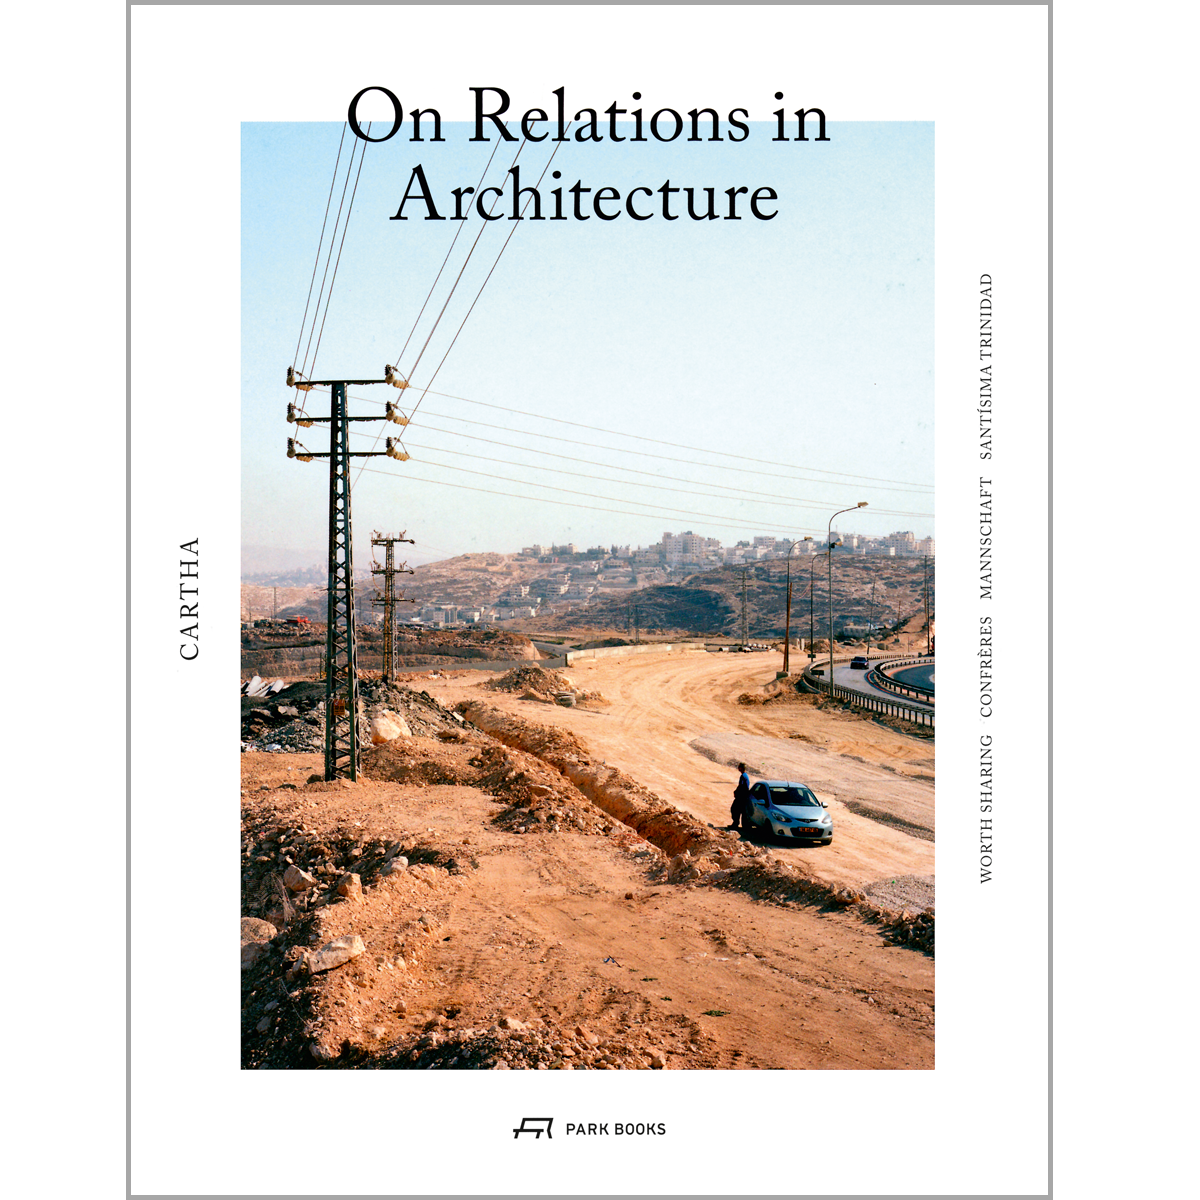 On Relations in Architecture